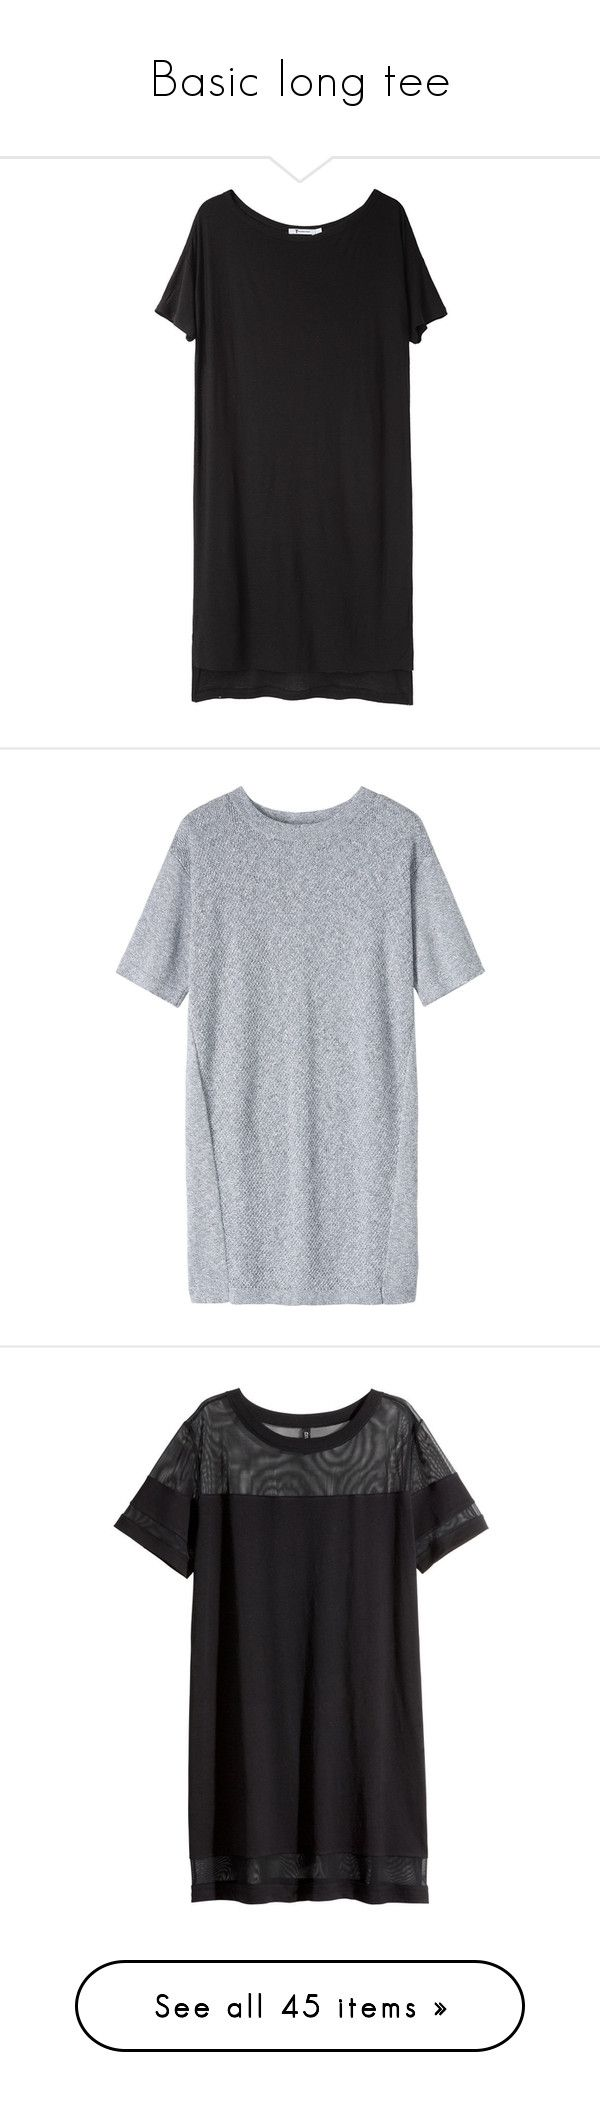 """Basic long tee"" by mam-ka ❤ liked on Polyvore featuring dresses, Tee, longtee, tops, vestidos, black, boat neck dress, jersey dresses, t-shirt dresses and short sleeve tee shirt dress"